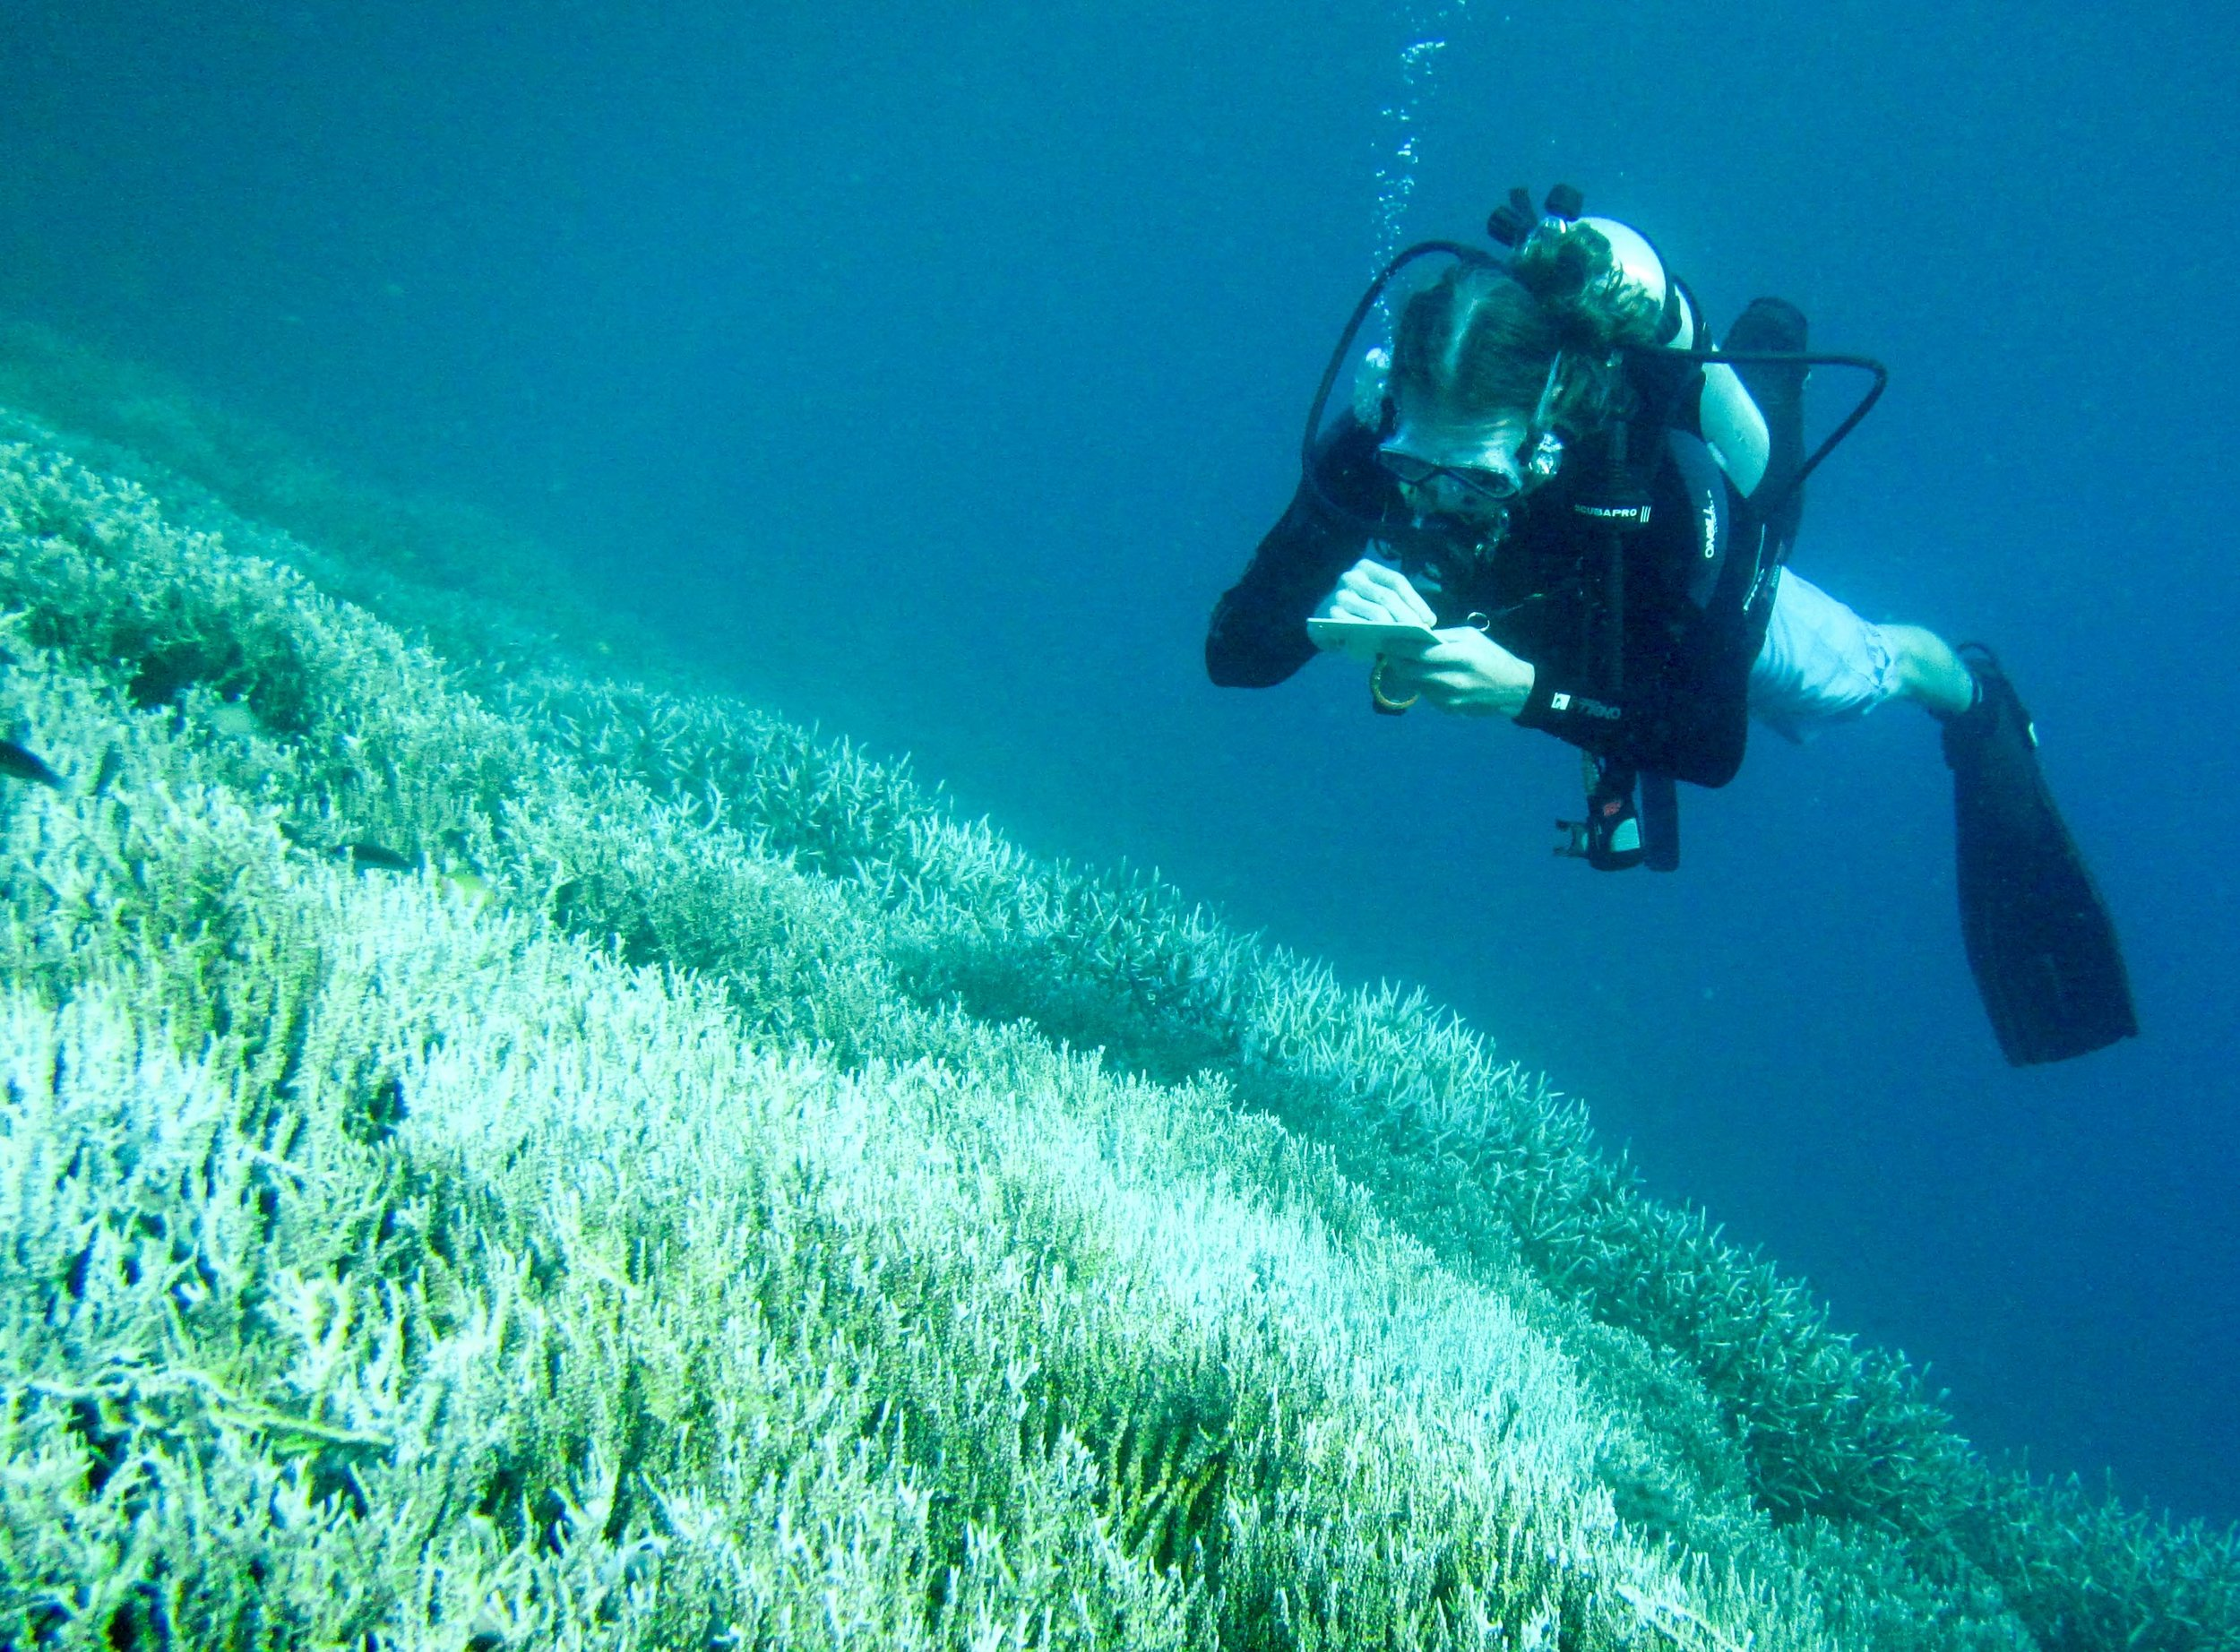 Austin surveying bleached coral reefs in Lombok.